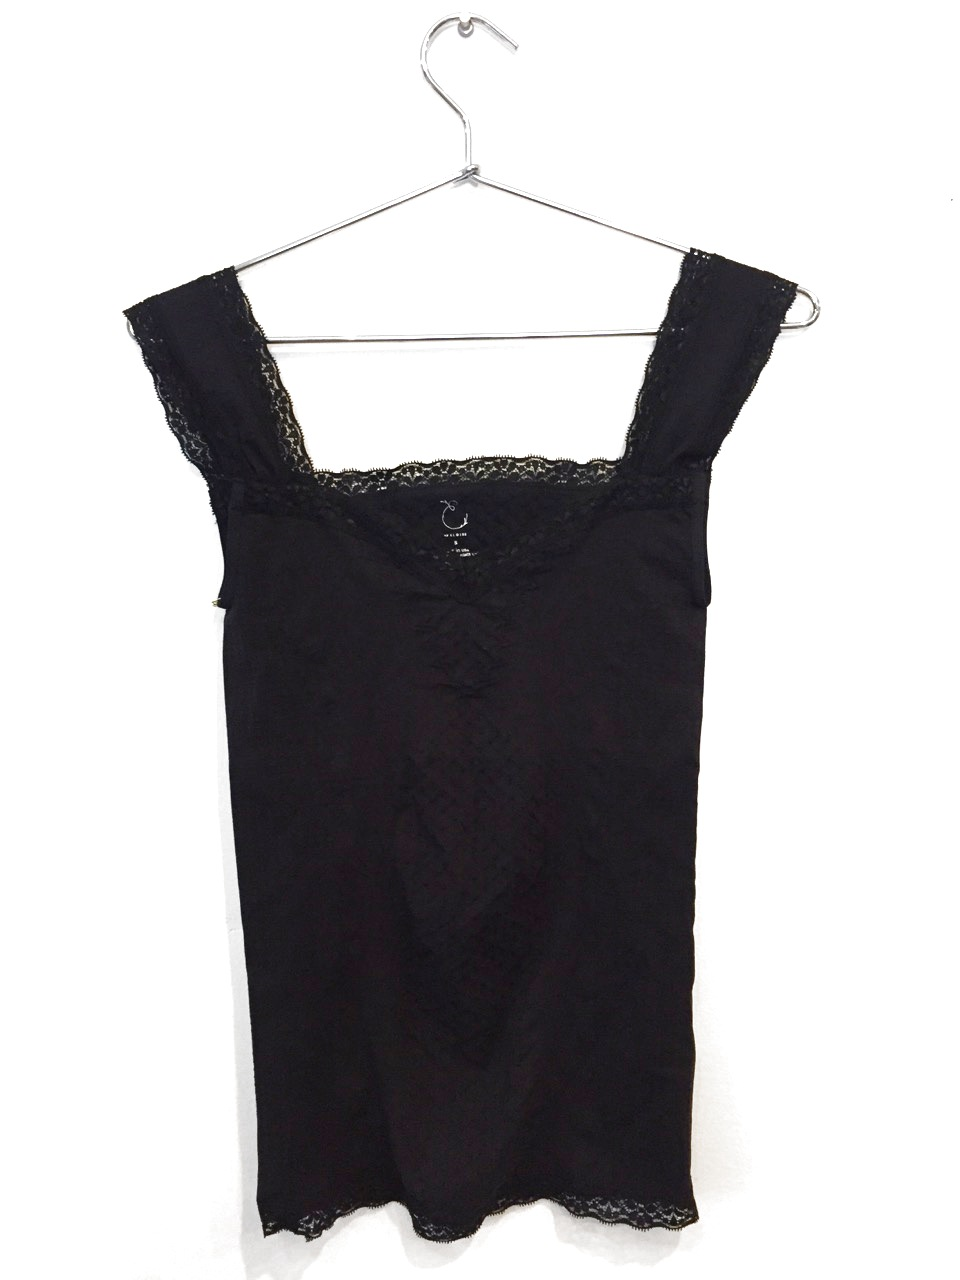 New-Anthropologie-Womens-Eloise-Laced-Seamless-Stretchy-V-Neck-Tank-Top-Cami-38 thumbnail 6